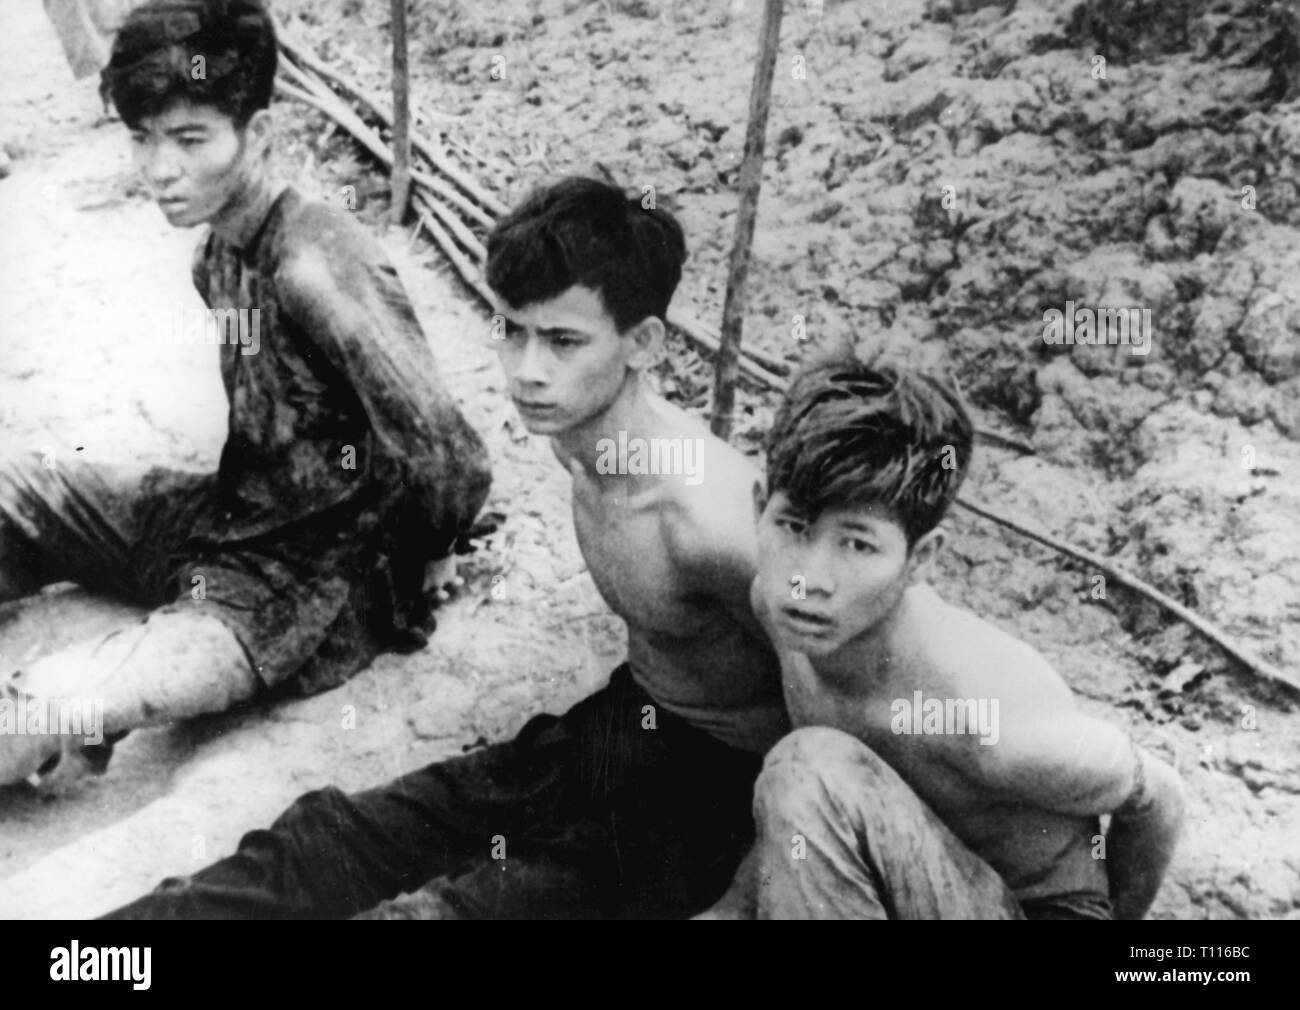 Vietnam War 1955 - 1975, during a mopping-up operation captured members of the National Front for the Liberation of South Vietnam (Vietcong), 3.9.1962, people, rebel, rebels, insurgents, enchained, guerilla, guerrilla, guerillas, guerrillas, NLF, South Vietnam, Viet Nam, Vietnam, war, wars, 20th century, 1960s, cleanup, cleanups, captives, captive, members, member, front, fronts, liberation, liberations, historic, historical, Additional-Rights-Clearance-Info-Not-Available - Stock Image